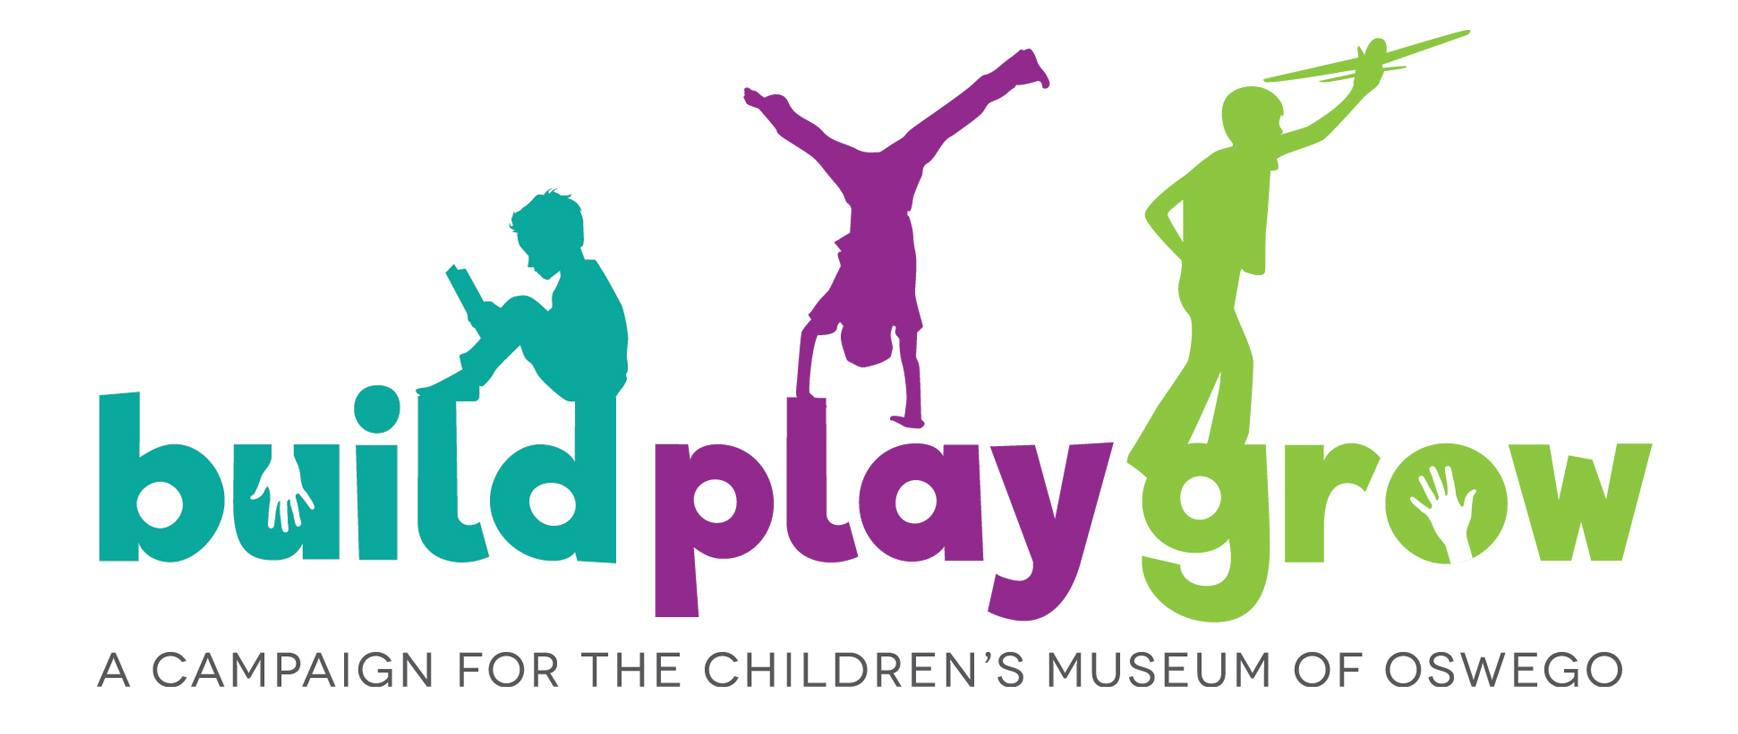 Inspiring children to learn, discover, create and explore through the power of play! image